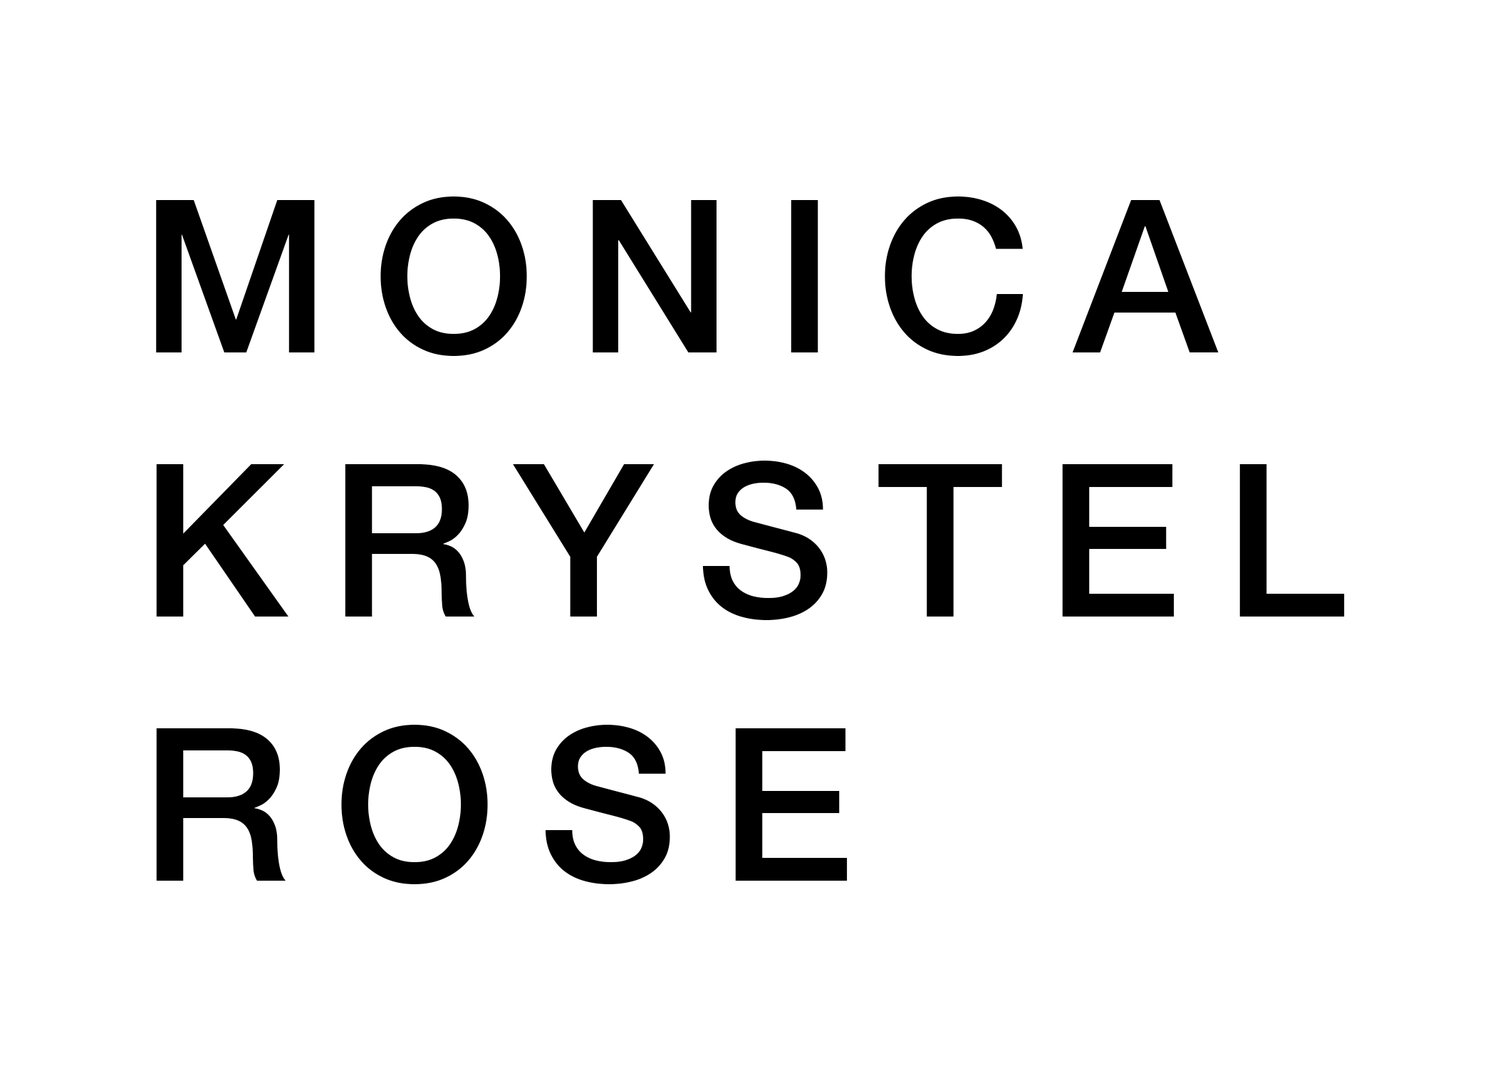 MONICA KRYSTEL ROSE